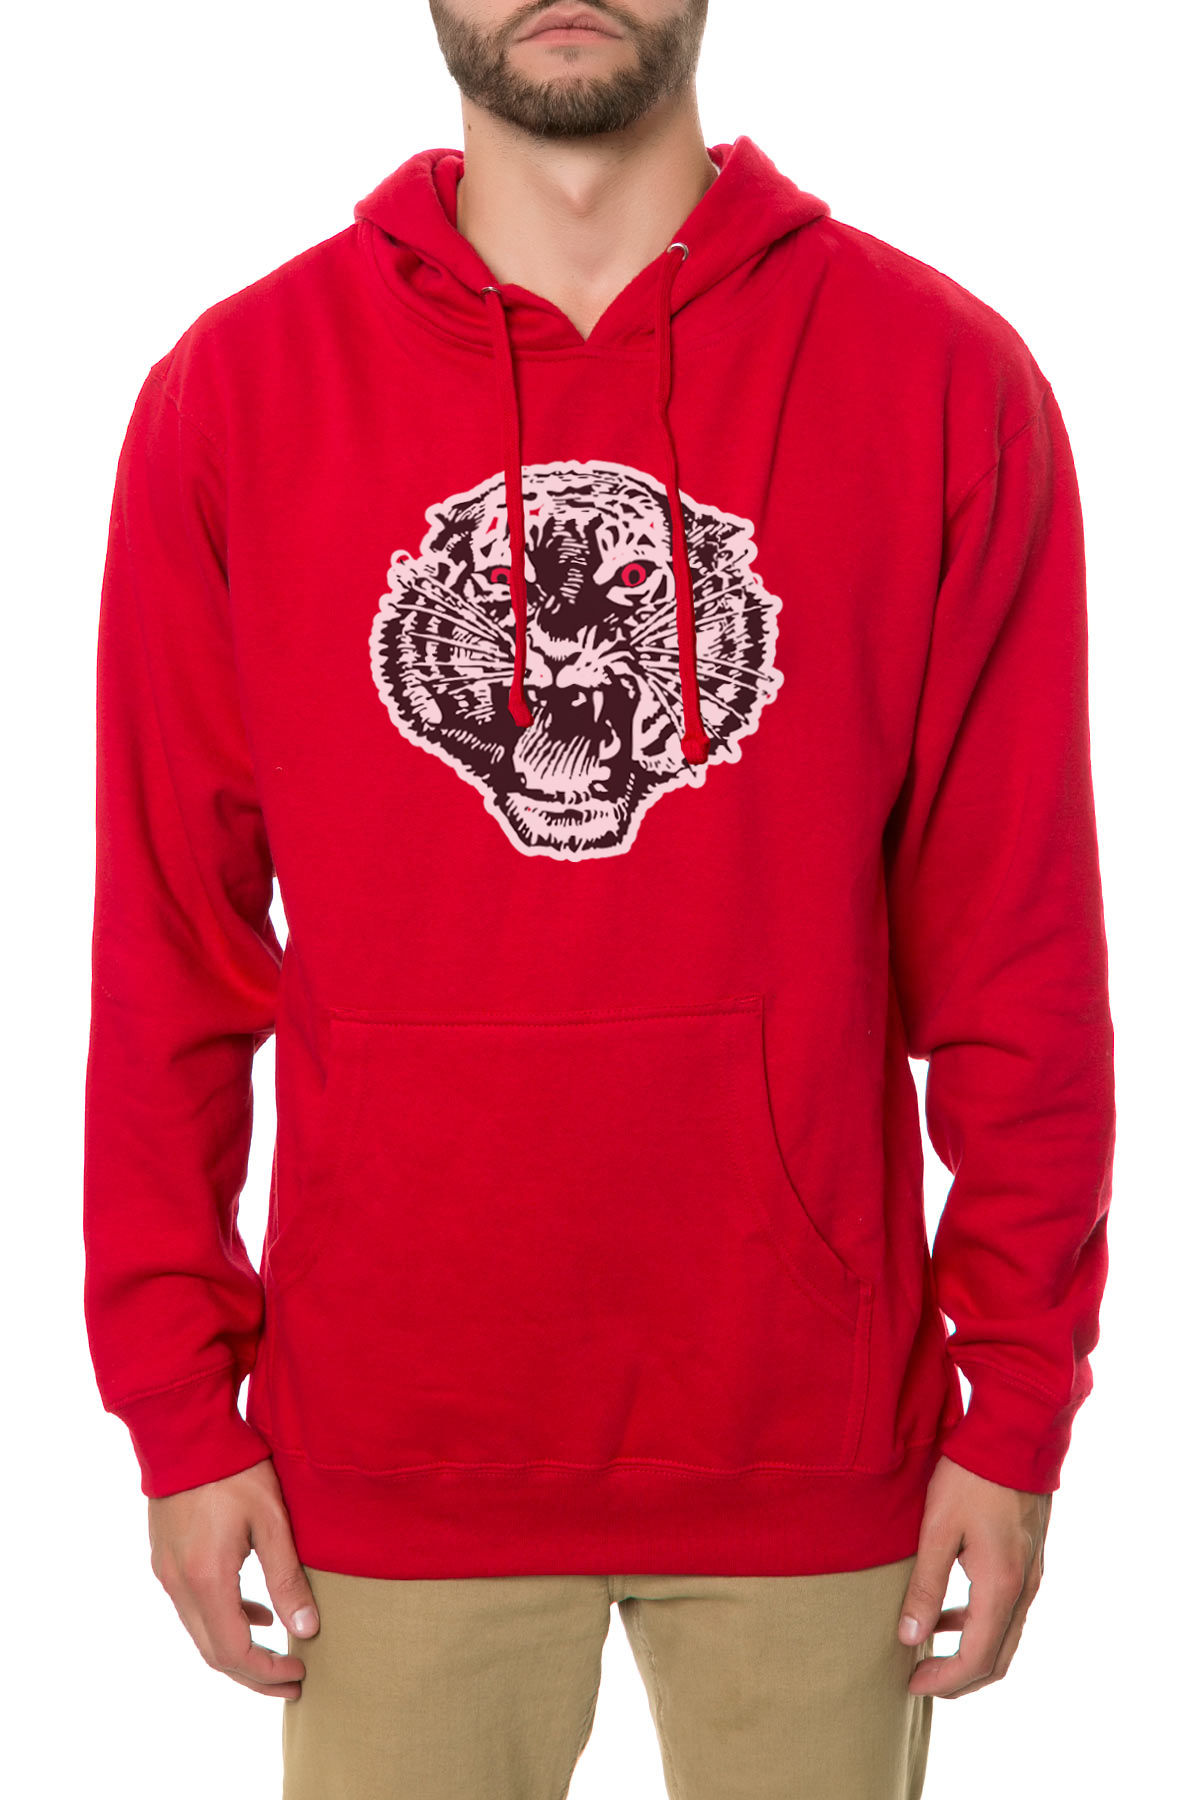 Image of The Mascot Hoodie in Red